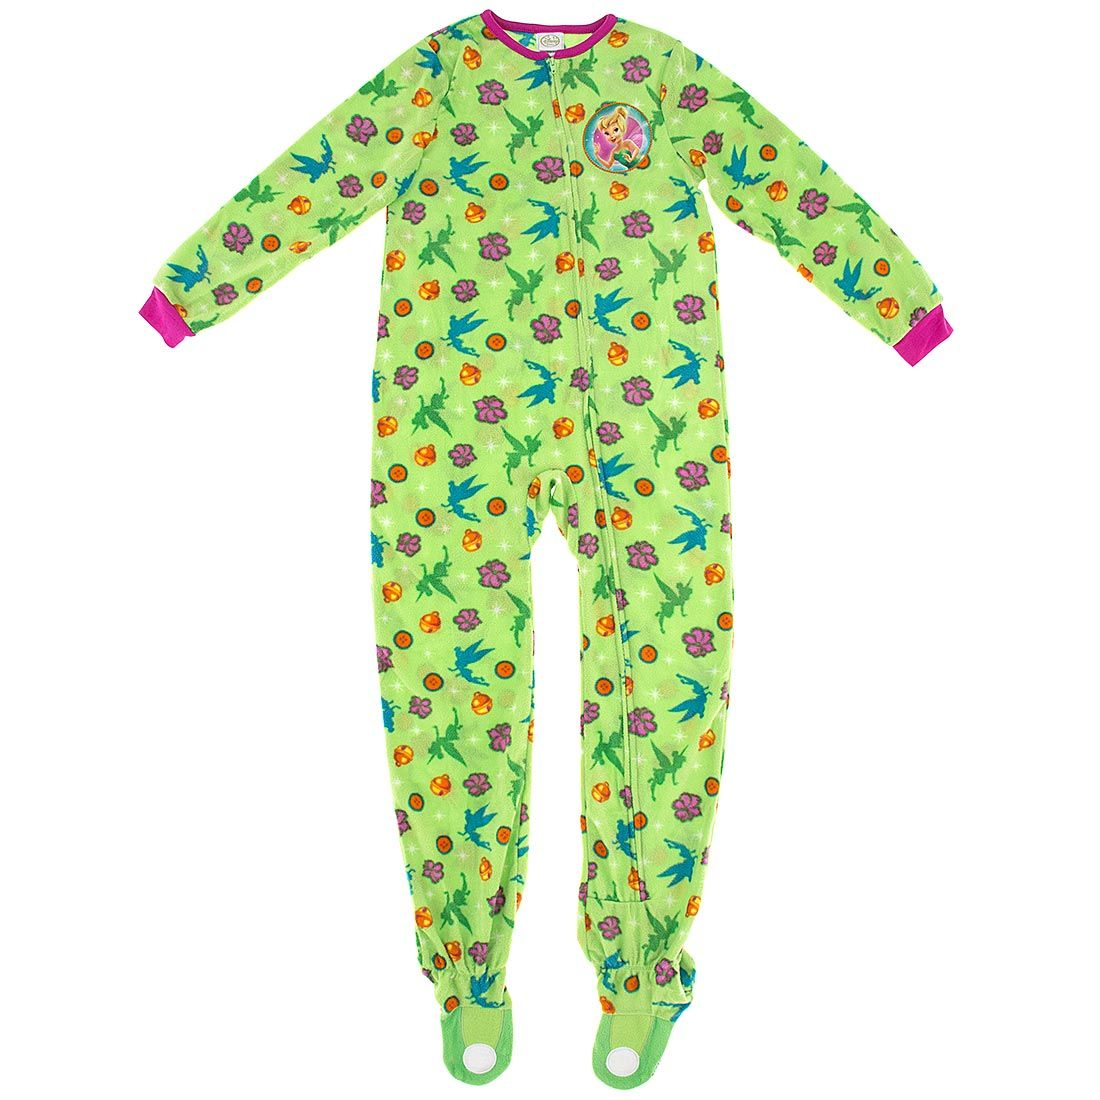 Tinker Bell Green Footed Pajamas For Toddlers And Girls